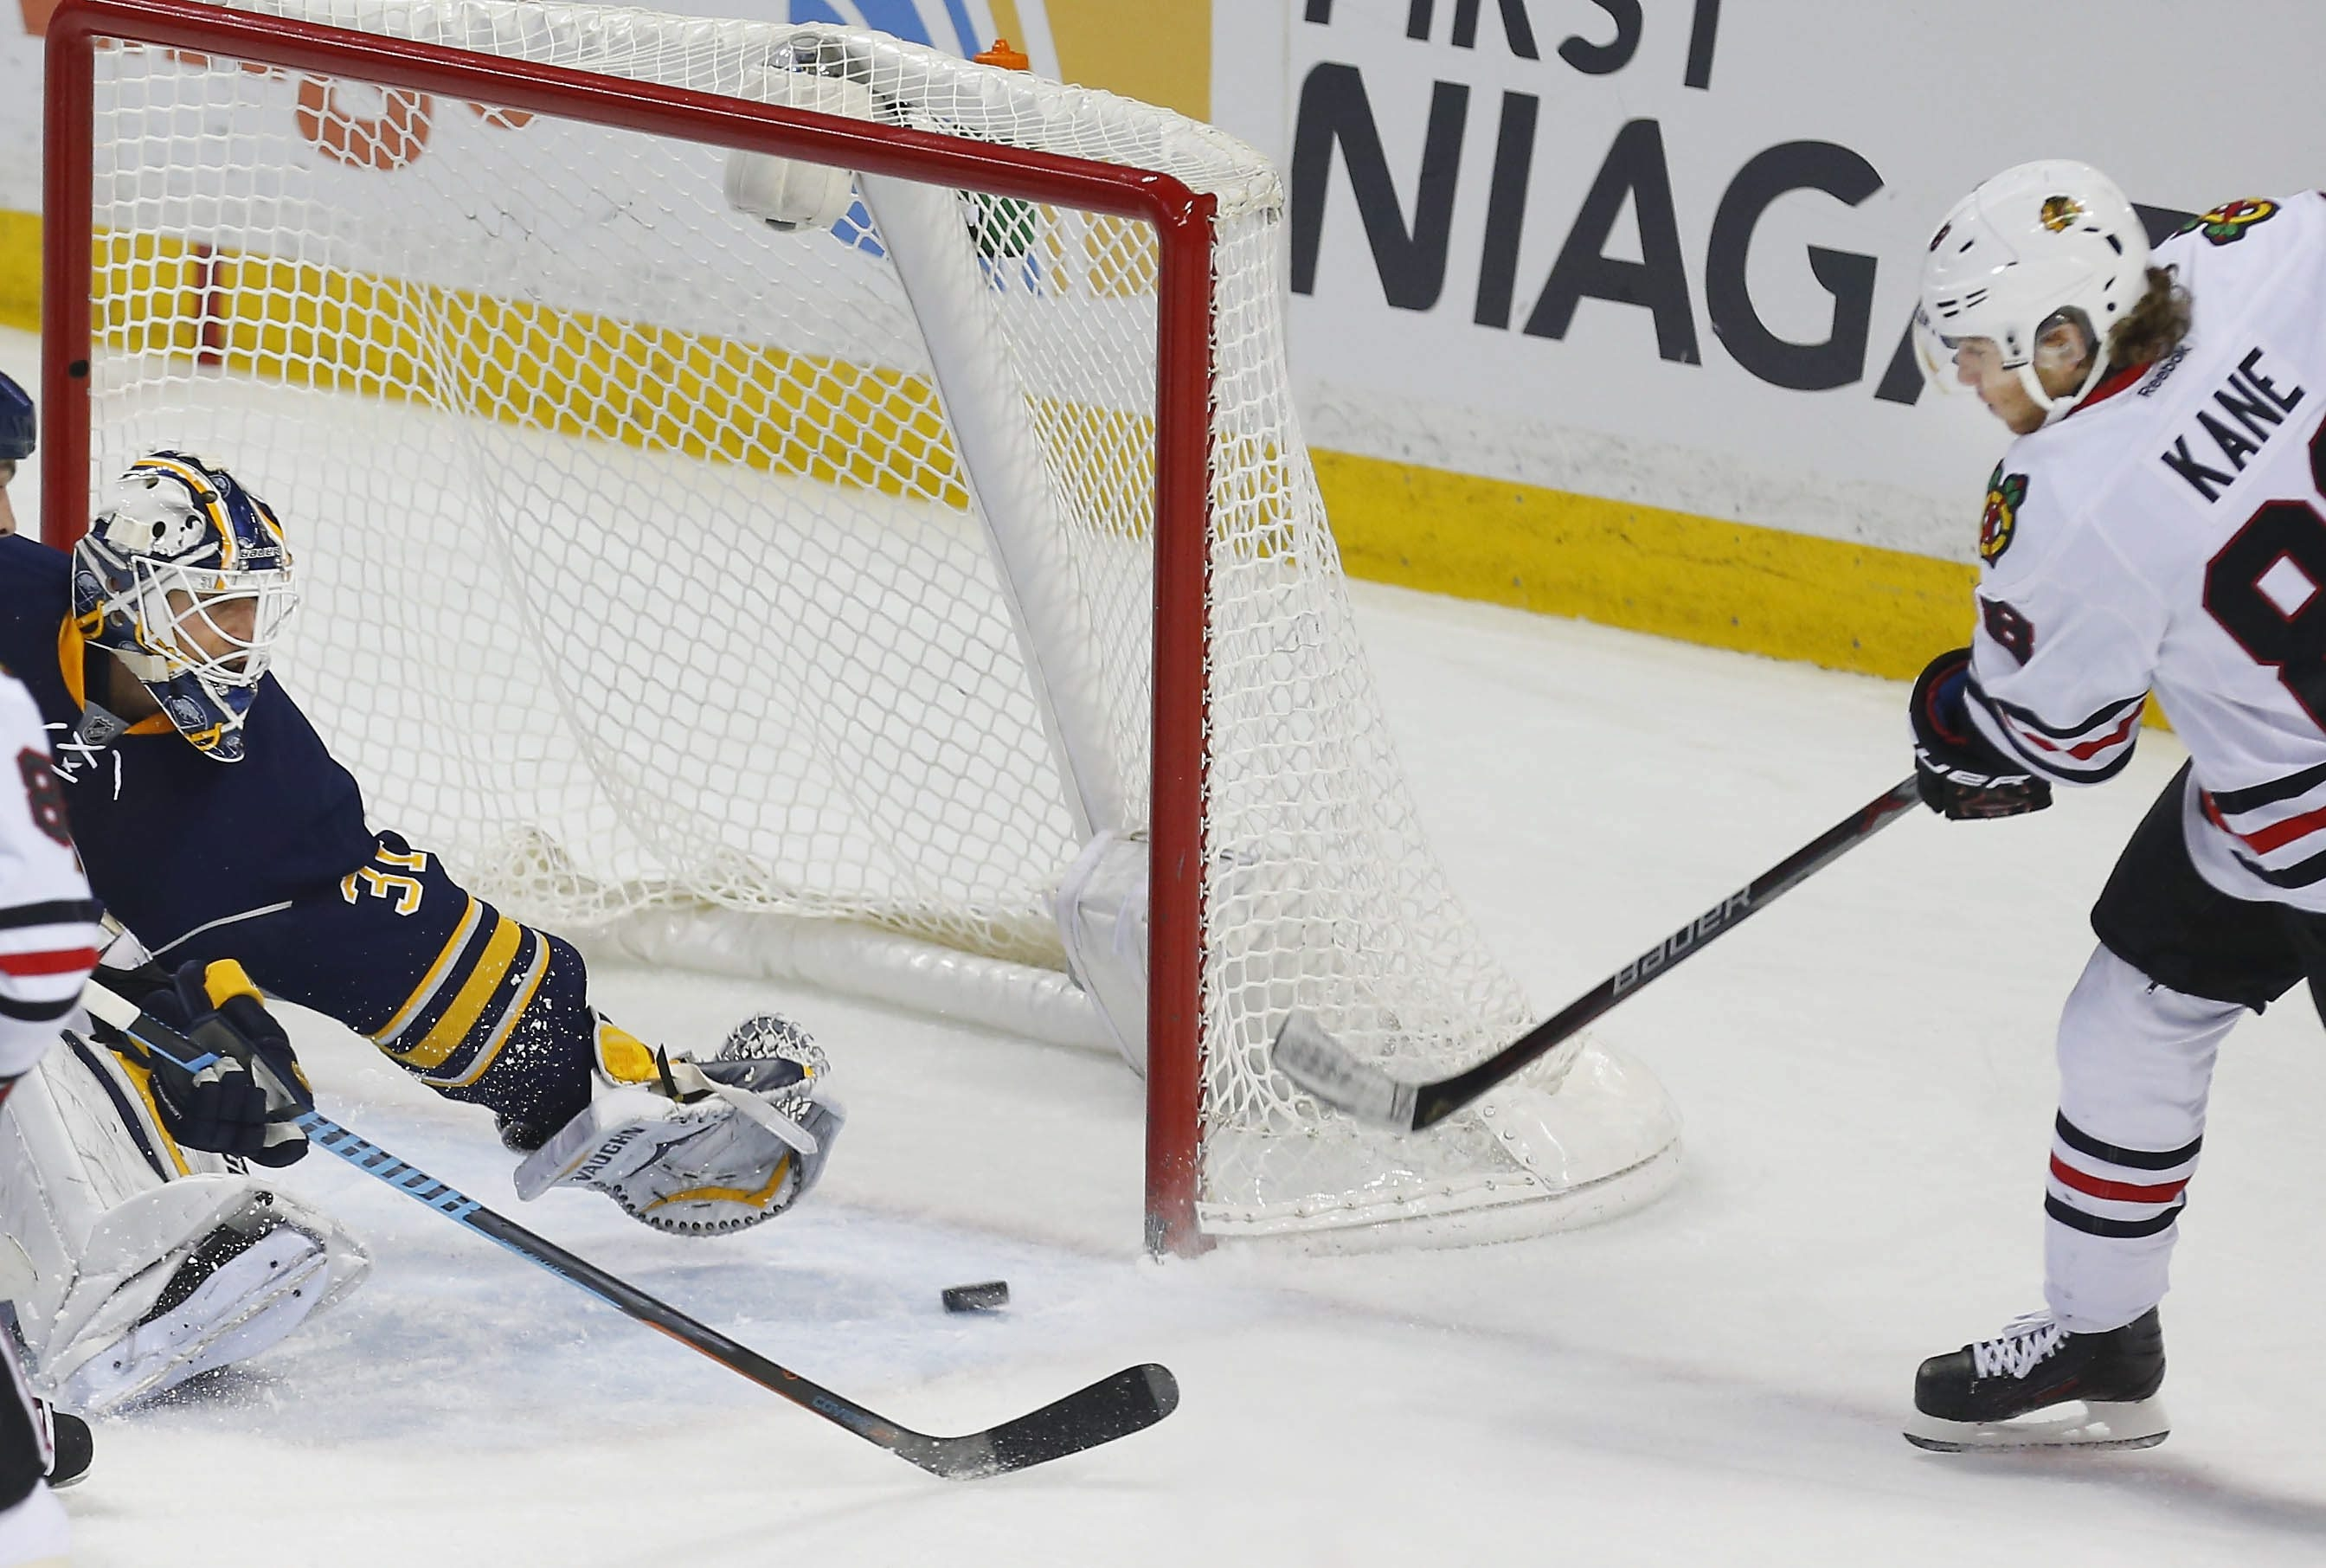 The Blackhawks' Patrick Kane beats the Sabres' Chad Johnson for the game-tying goal on Saturday.